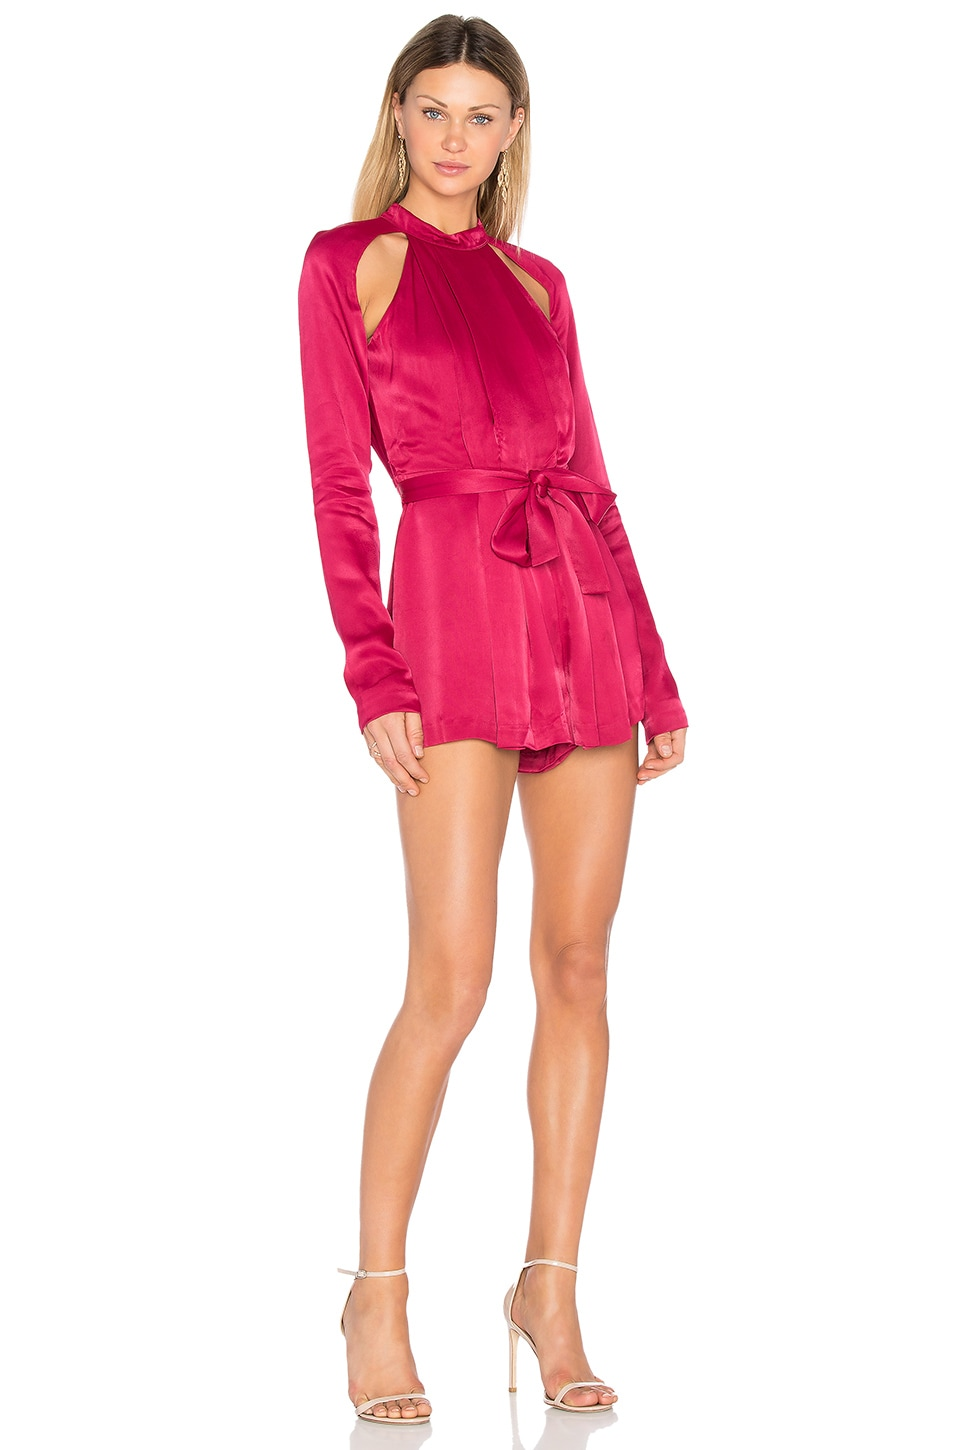 Can't Resist Long Sleeve Romper by C/MEO